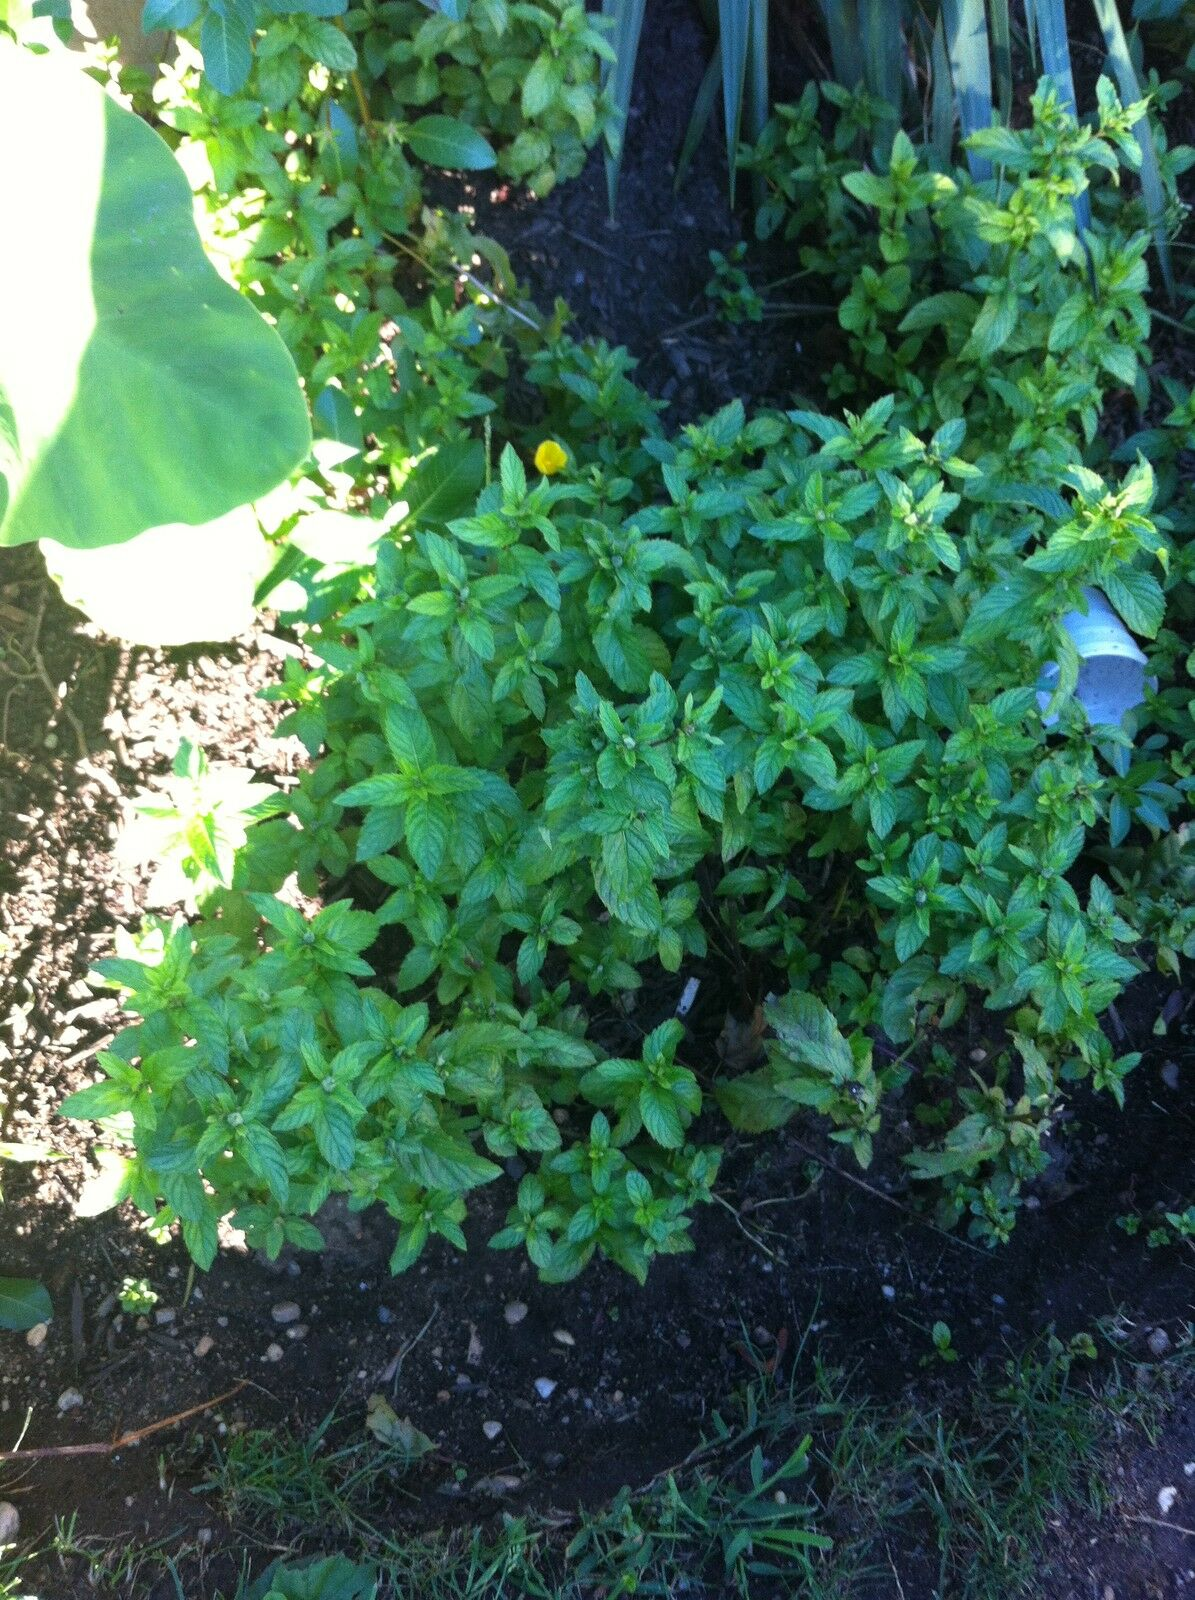 Peppermint plant live plant roots great tea making plant for Winter pond plants